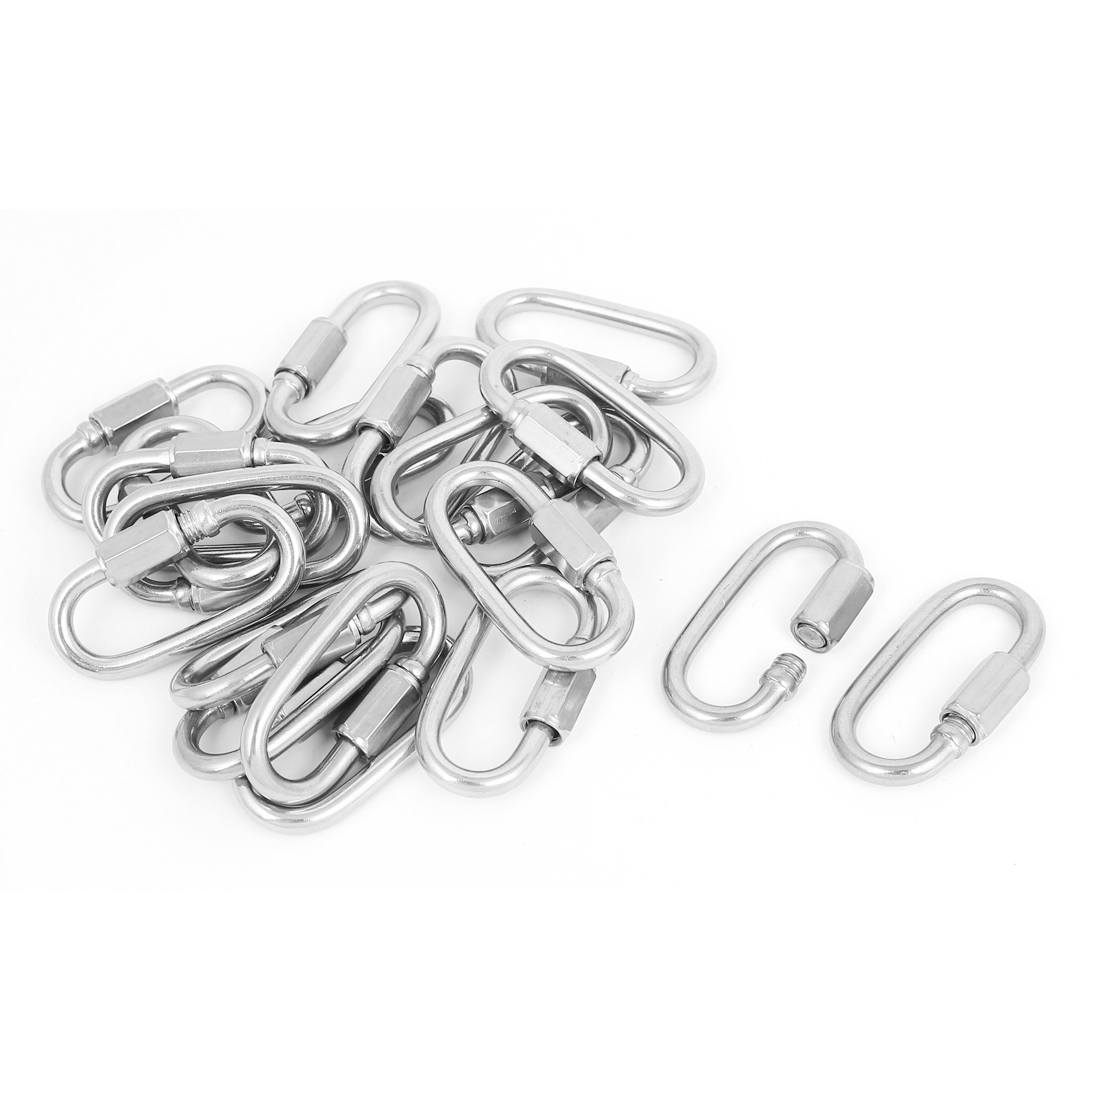 5mm Thickness Stainless Steel Quick Link Chain Rope Cable Connector 20 Pcs